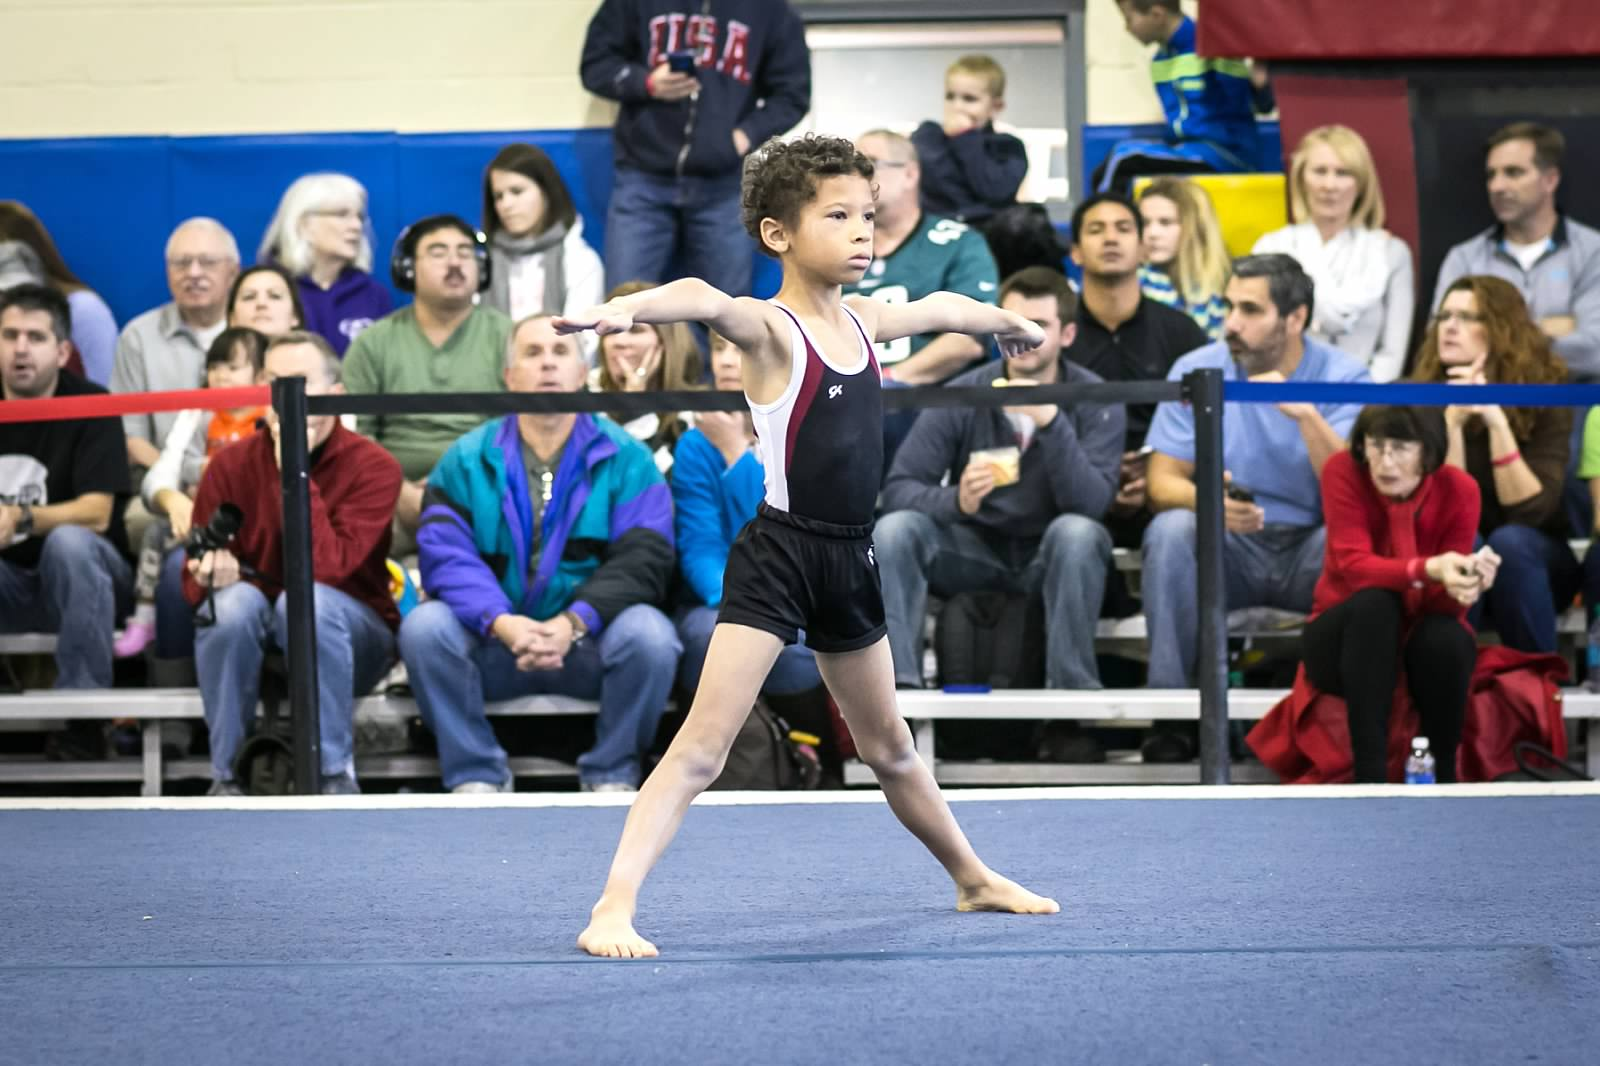 A Level 4 on the floor exercise during the 2014 BWI.